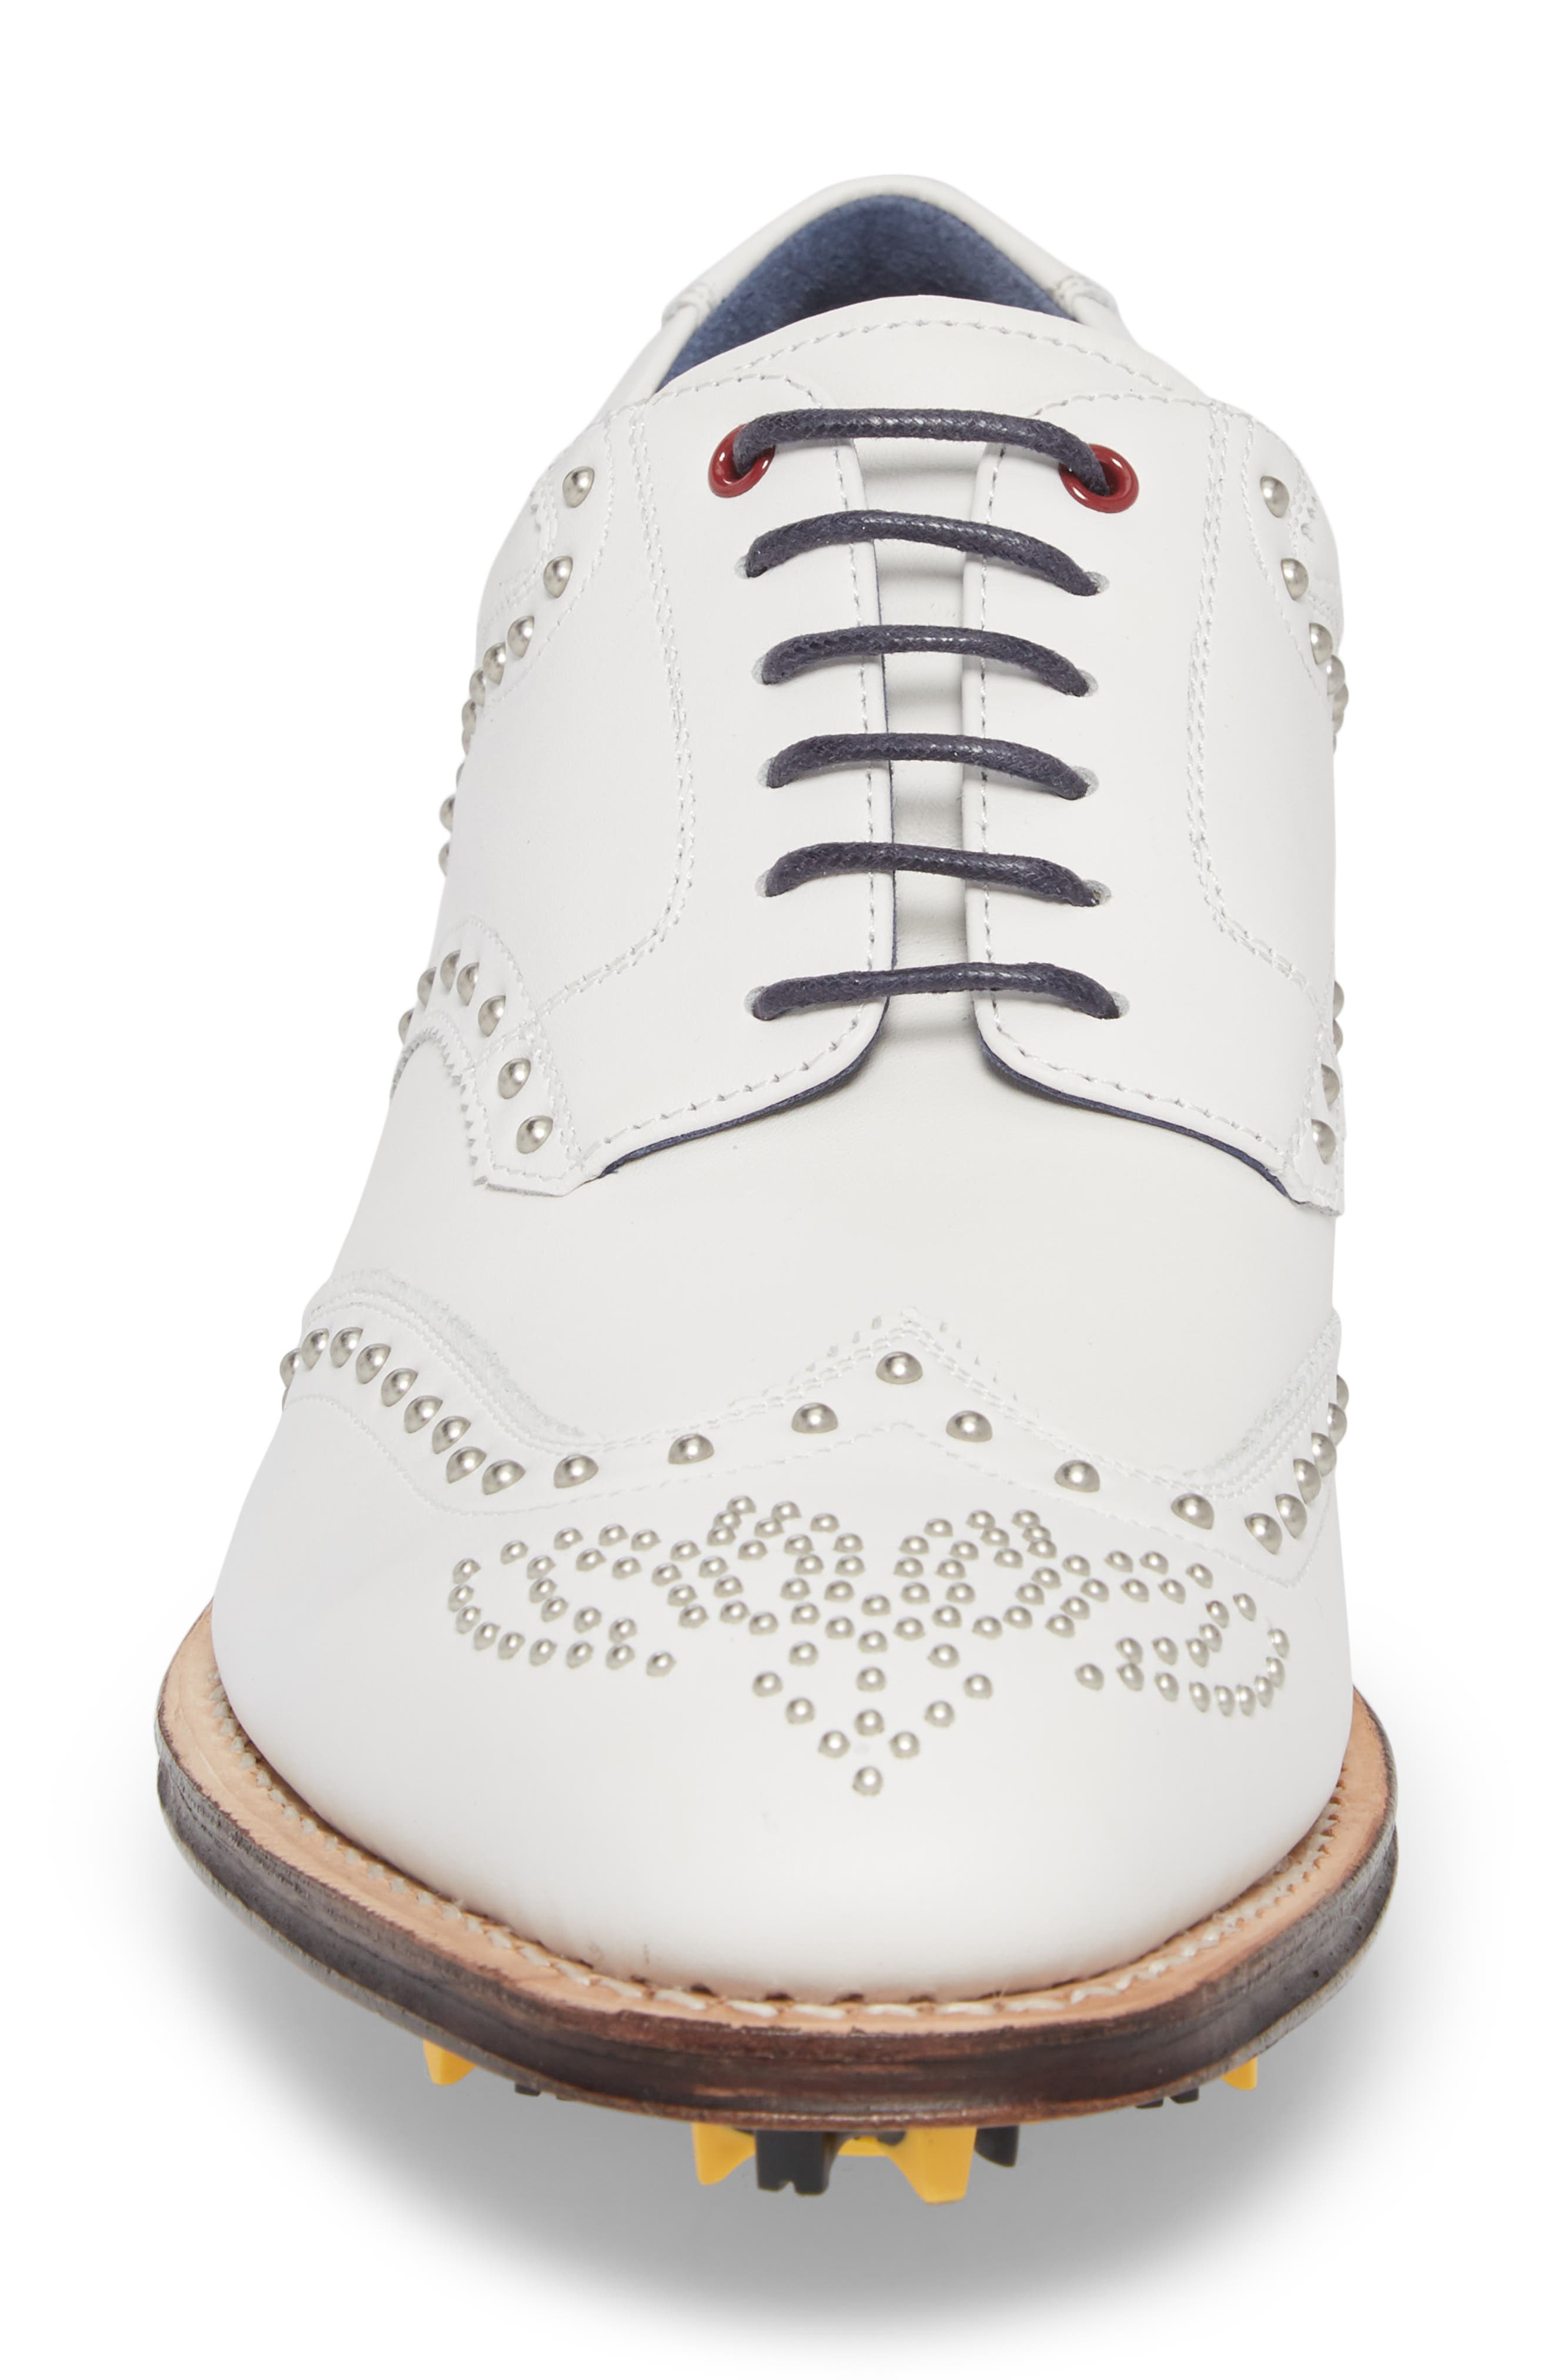 Rocker Plain Toe Oxford with Removable Cleats,                             Alternate thumbnail 4, color,                             White Leather